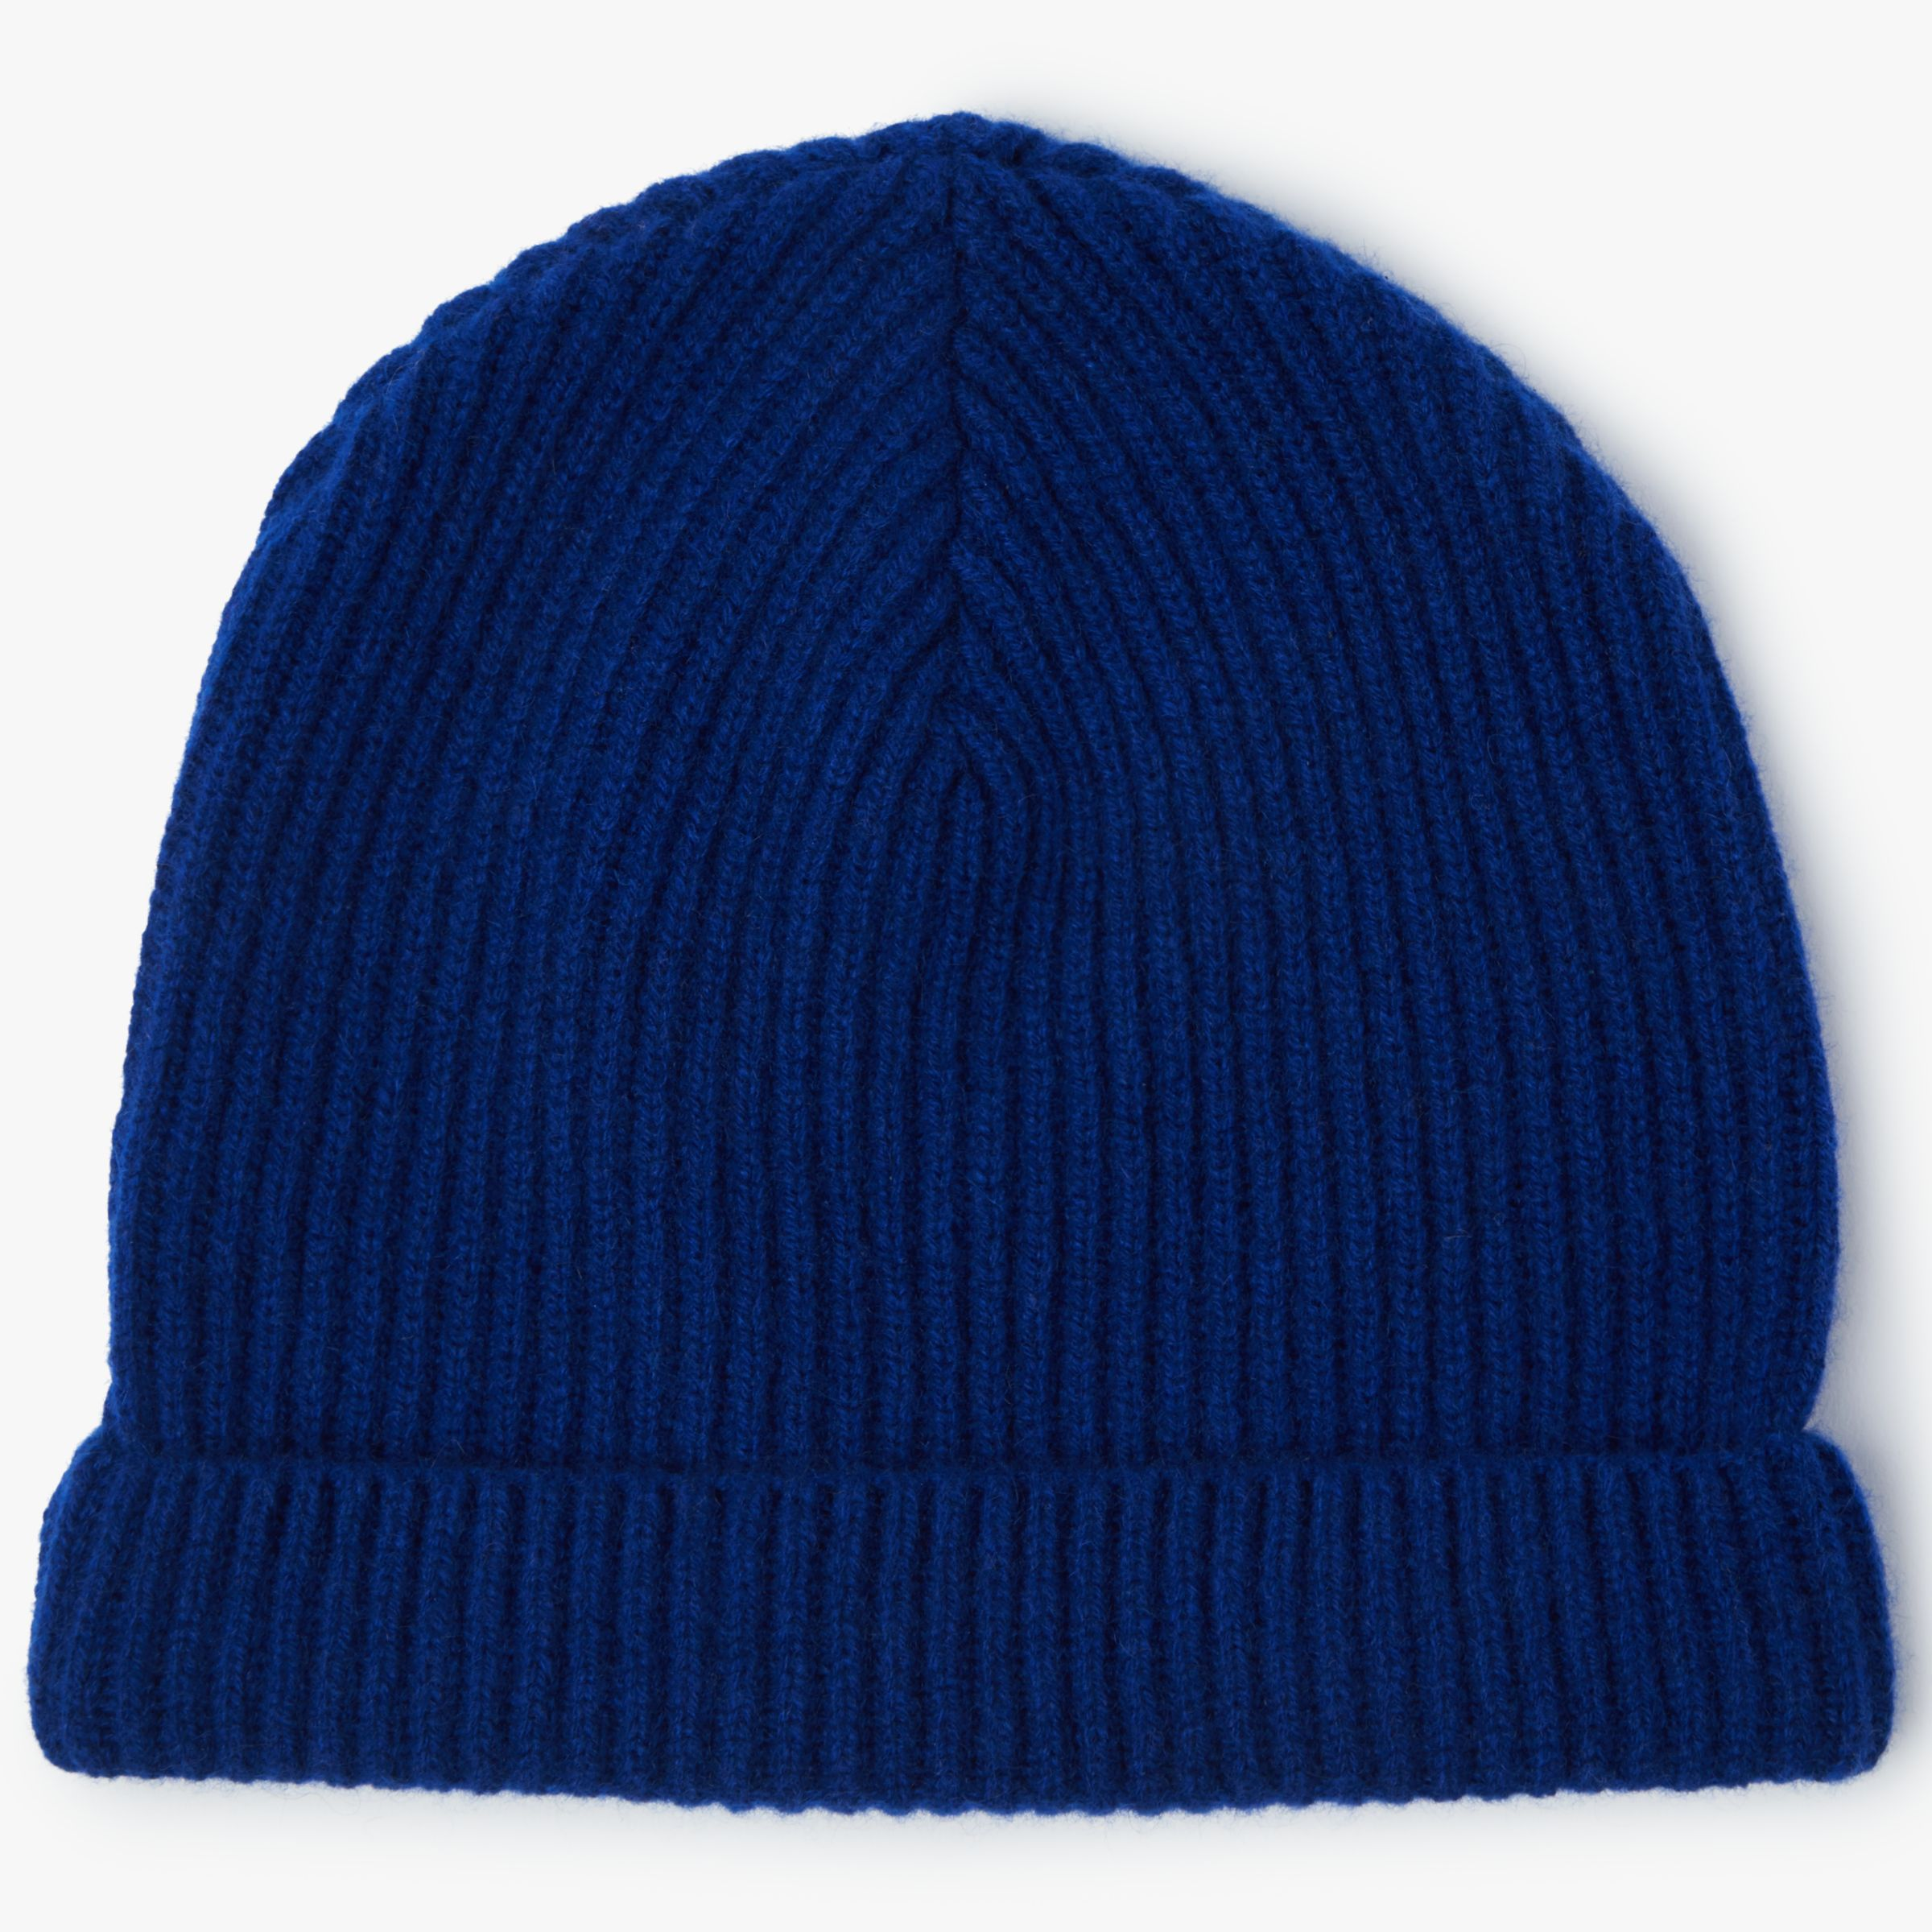 e3e8aa2d89a19 John Lewis Made in Italy Cashmere Beanie Hat